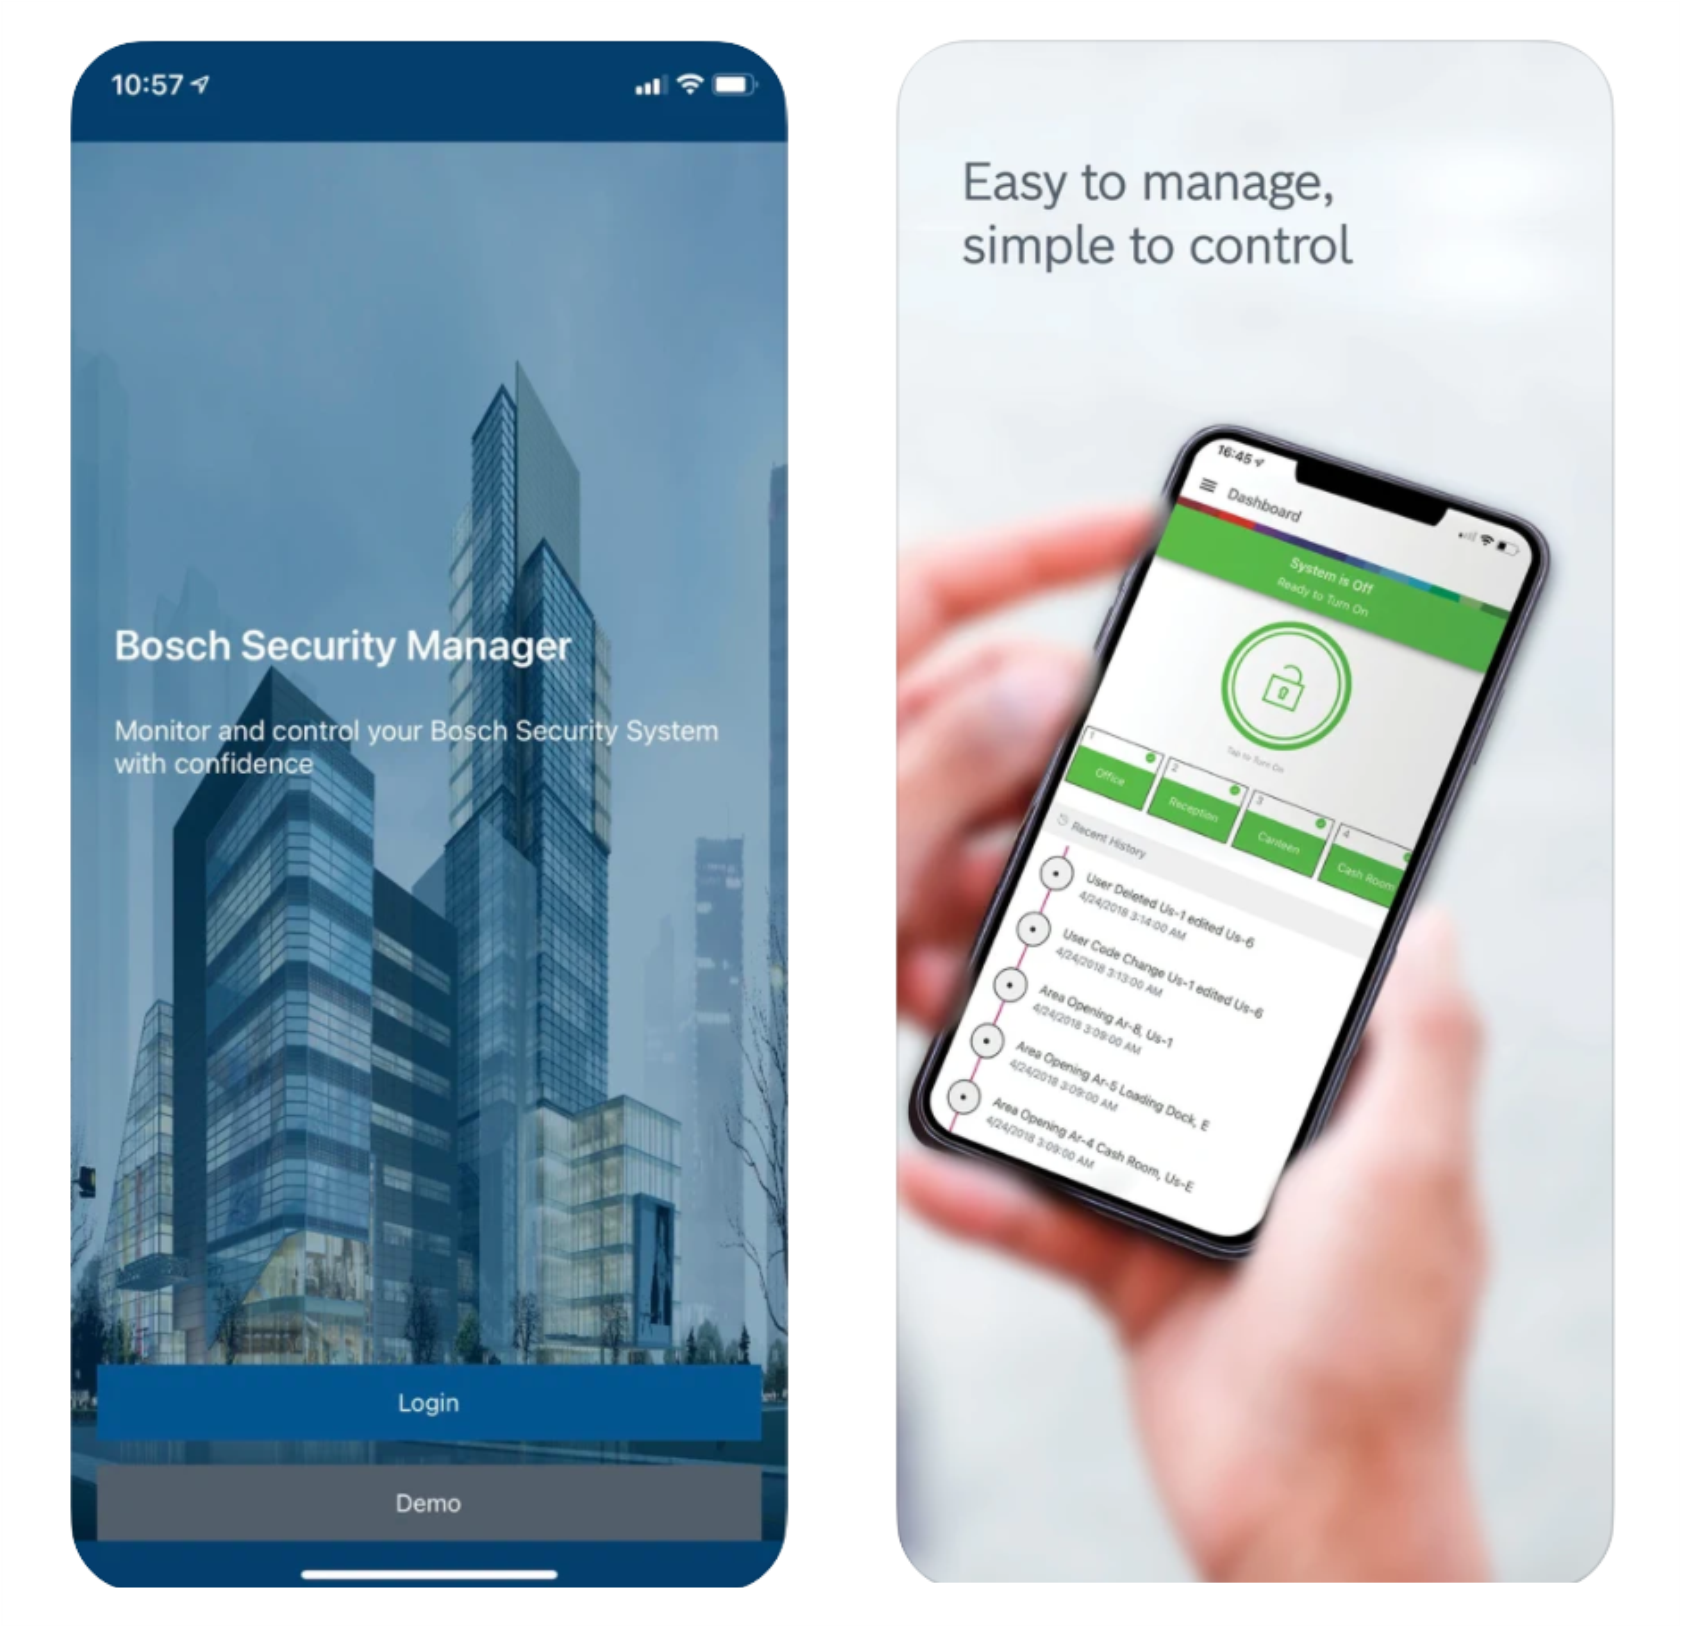 Bosch Security Manager App Image 1